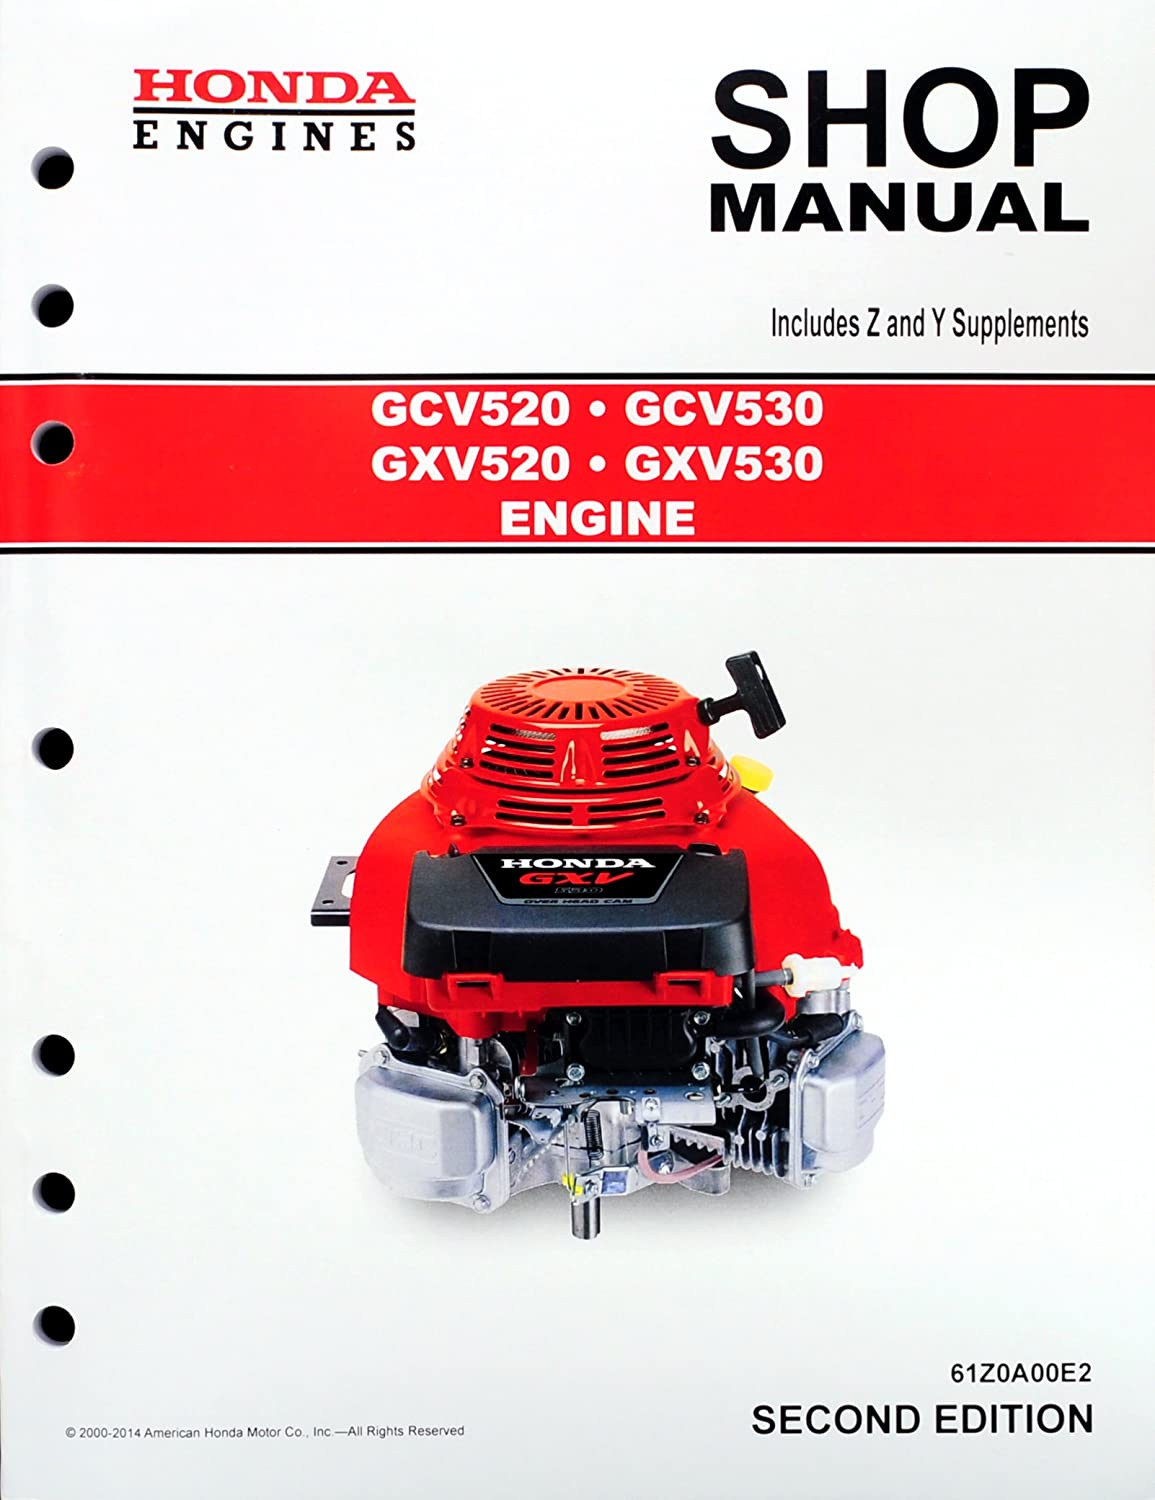 Amazon.com : Honda GCV520 GCV530 GXV520 GXV530 Engine Service Repair Shop  Manual : Garden & Outdoor